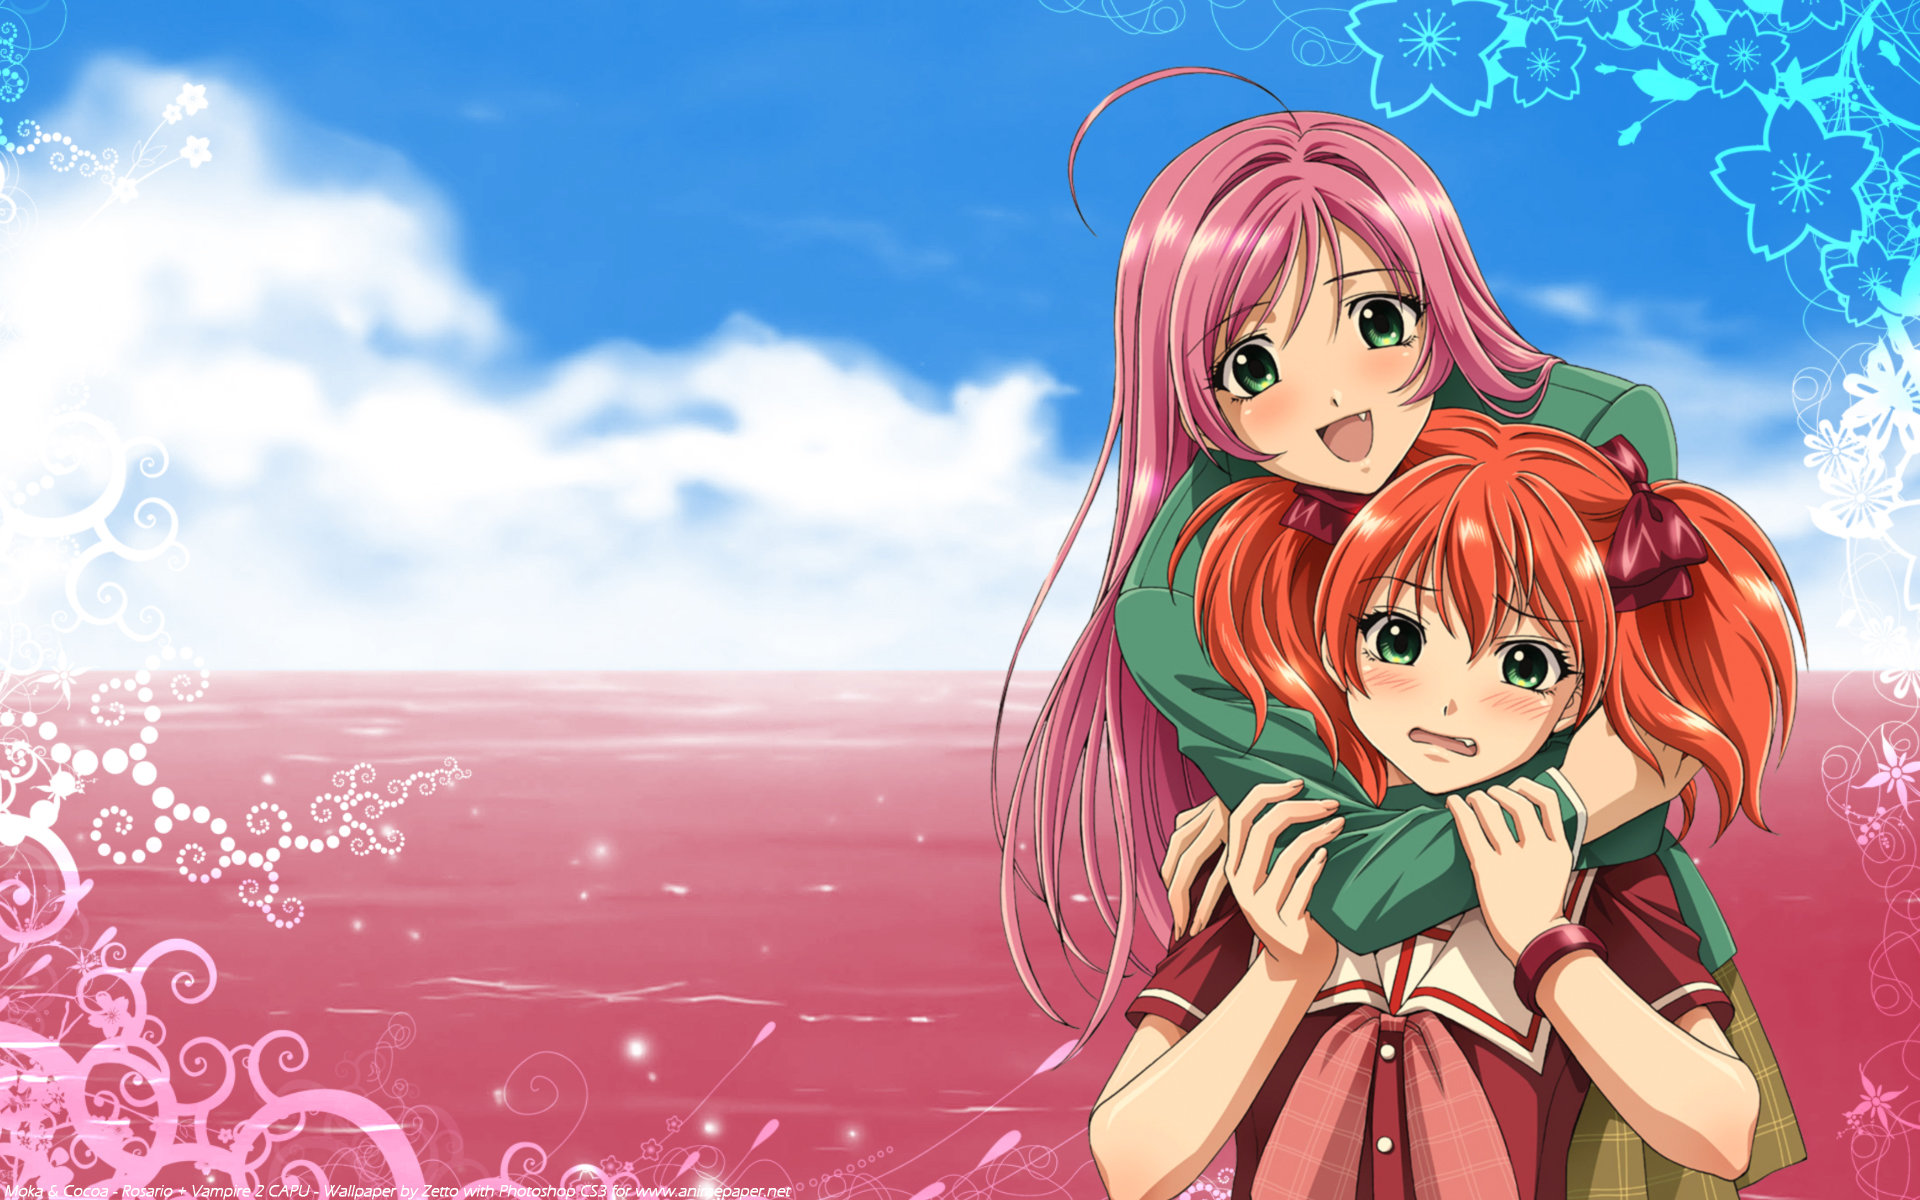 Download hd 1920x1200 Rosario + Vampire desktop background ID:164662 for free